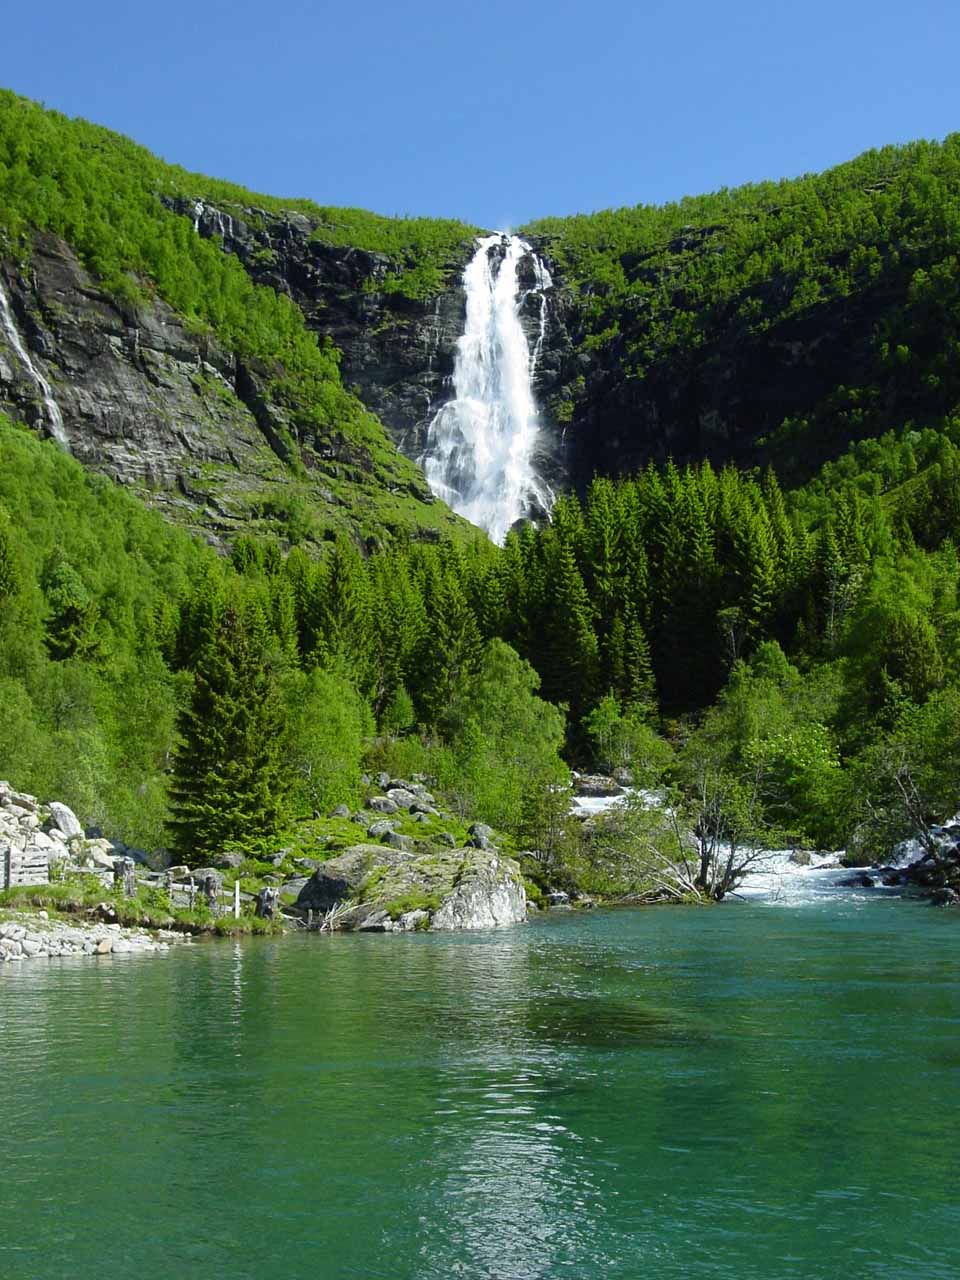 Closer look at Sanddalsfossen from across the clear man-made pool